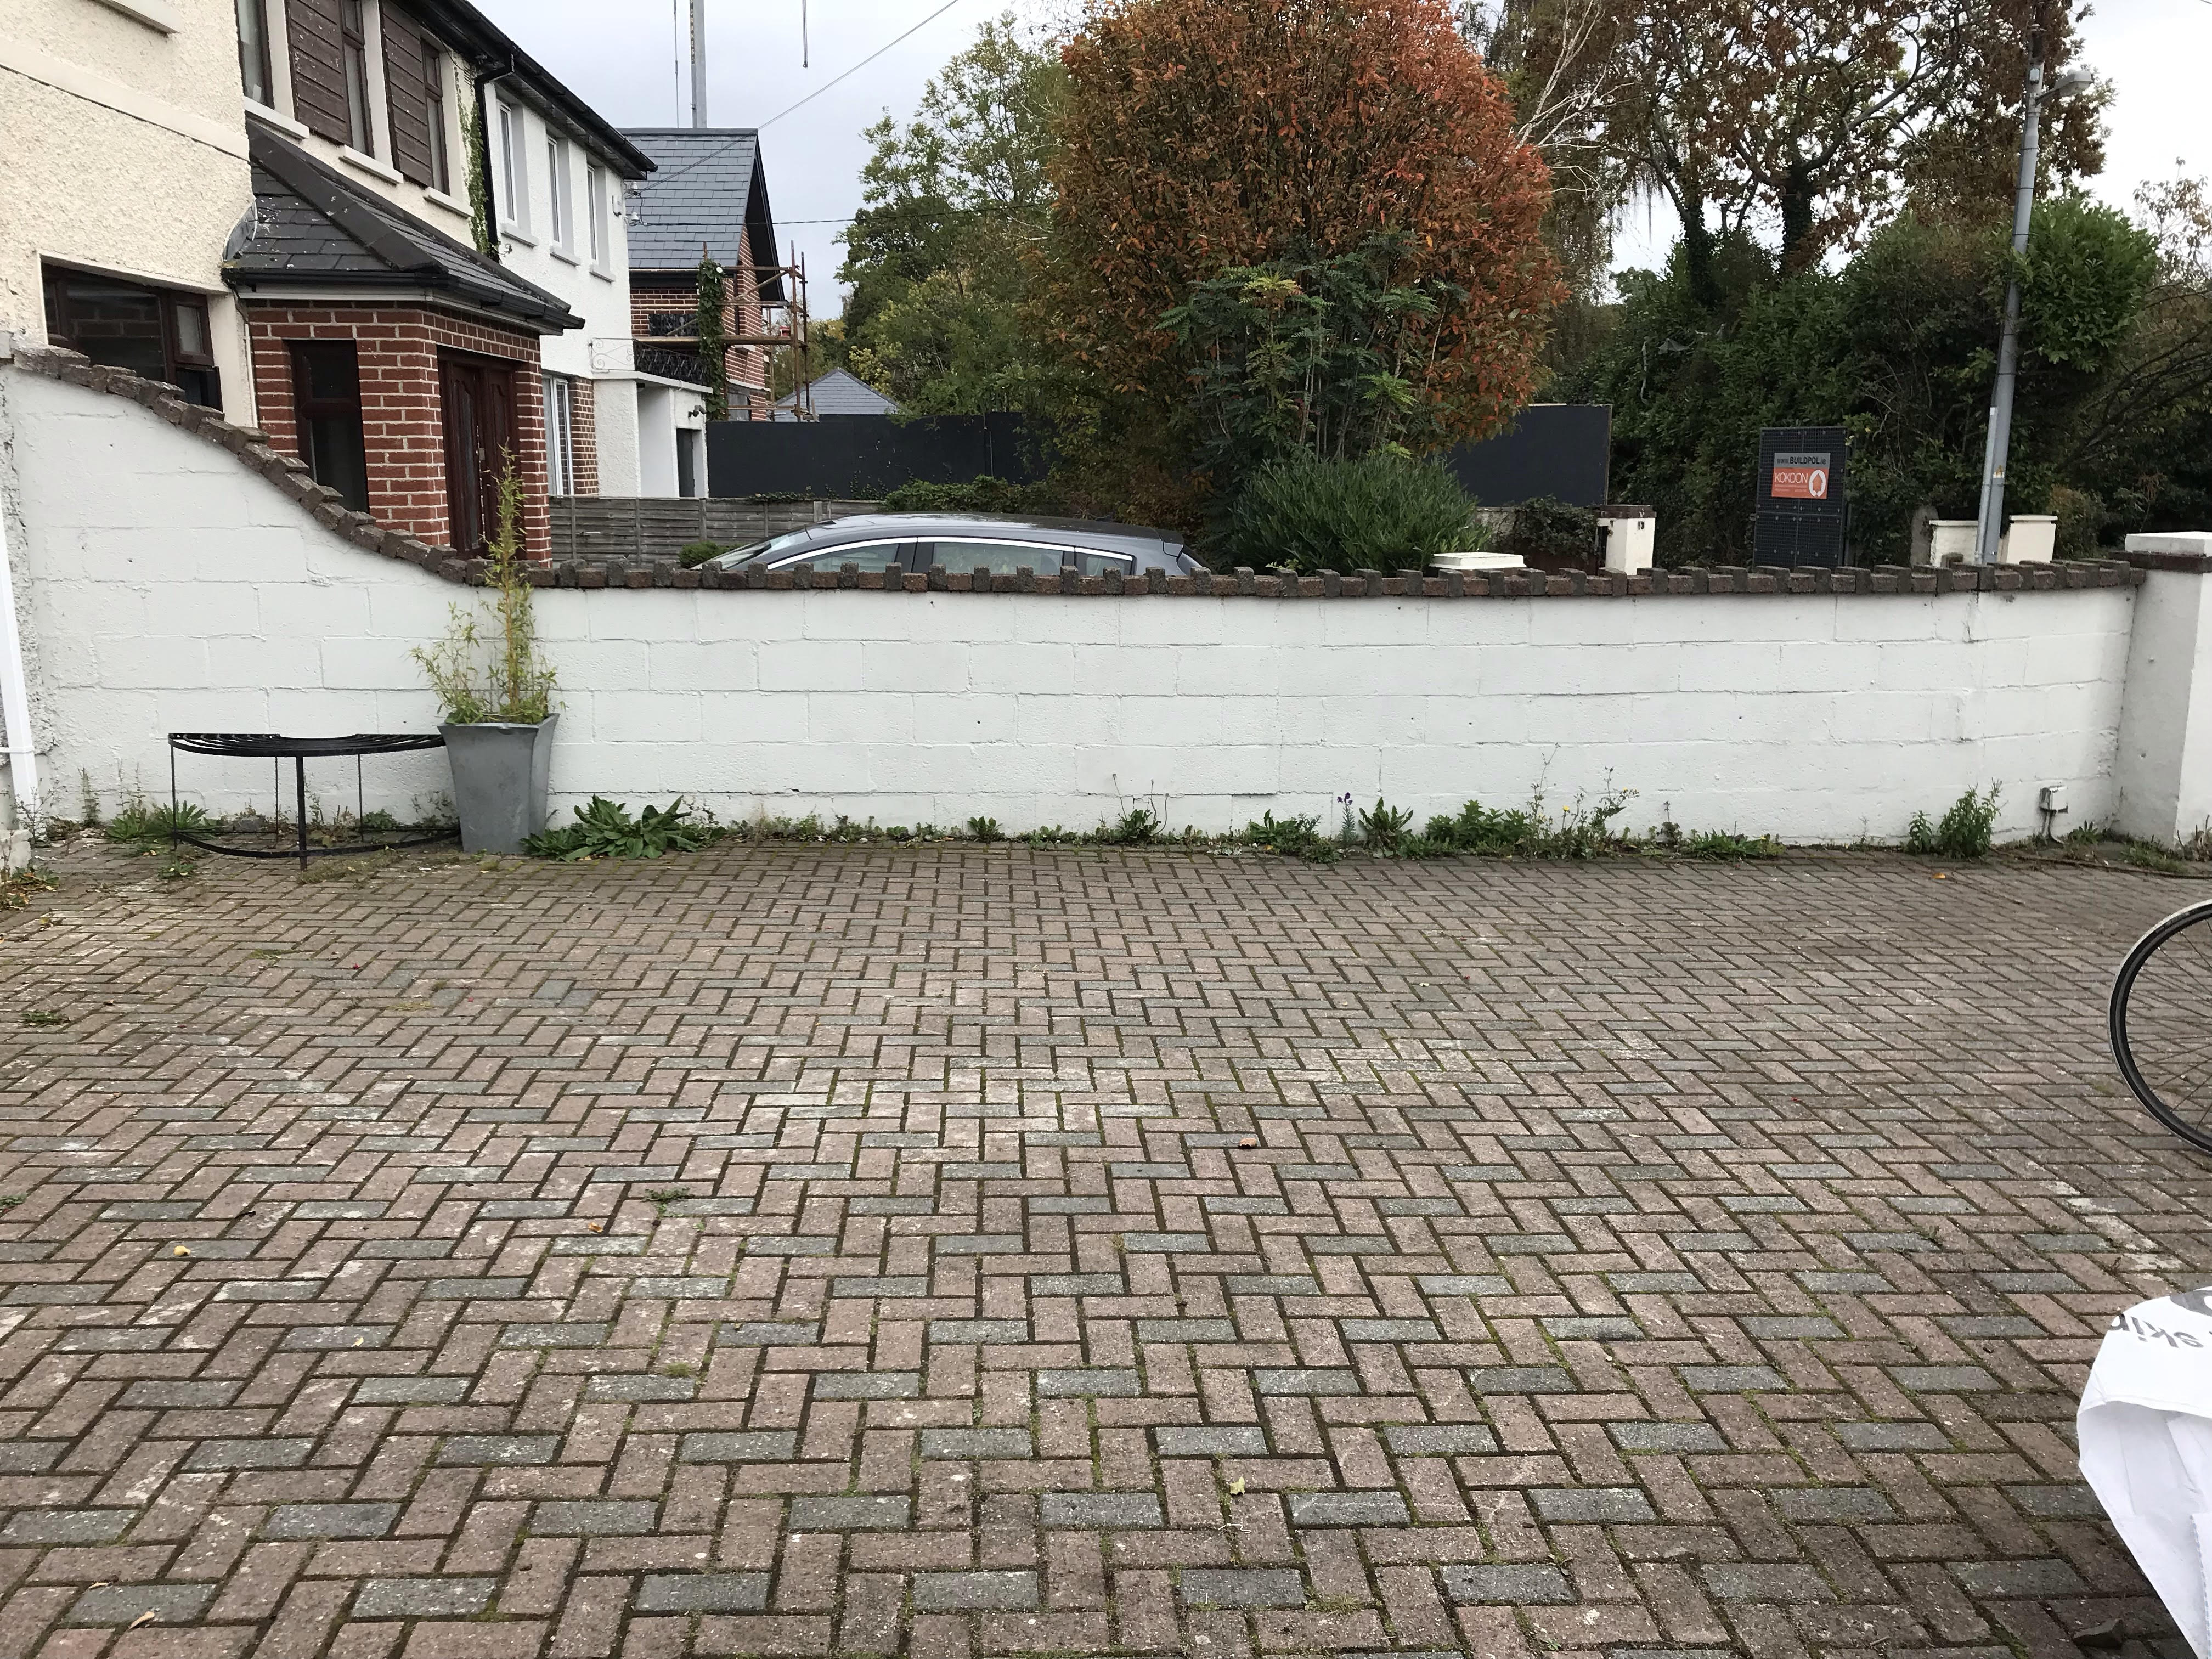 2 Front driveway walls. total 25 m square